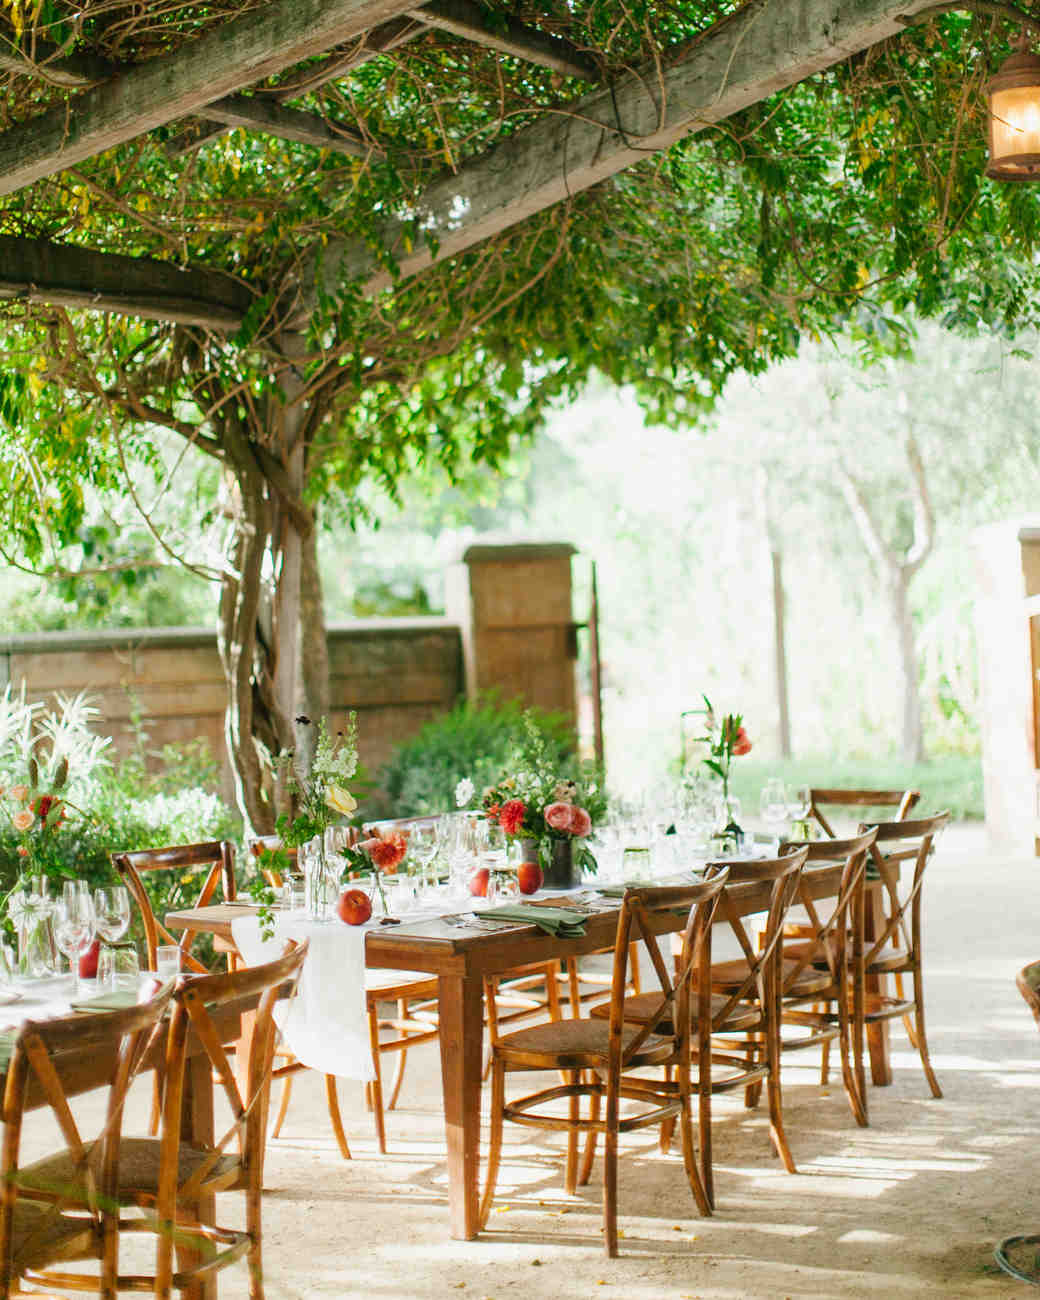 15 Outdoor Wedding Ideas That Are Totally Genius: A Casual Garden Party Wedding In Northern California